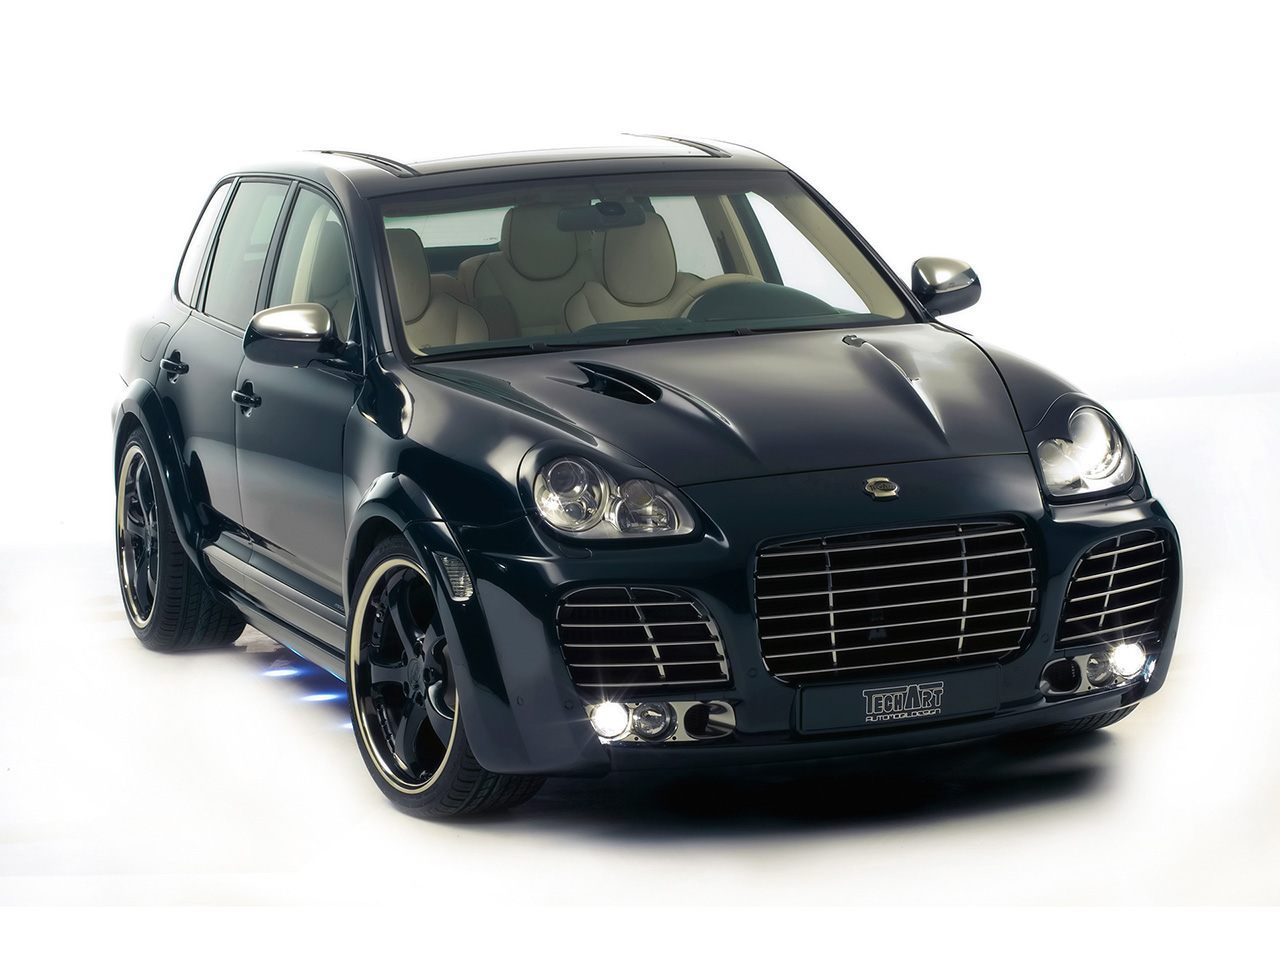 Techart Magnum Based On Porsche Cayenne Turbo Car Tuning